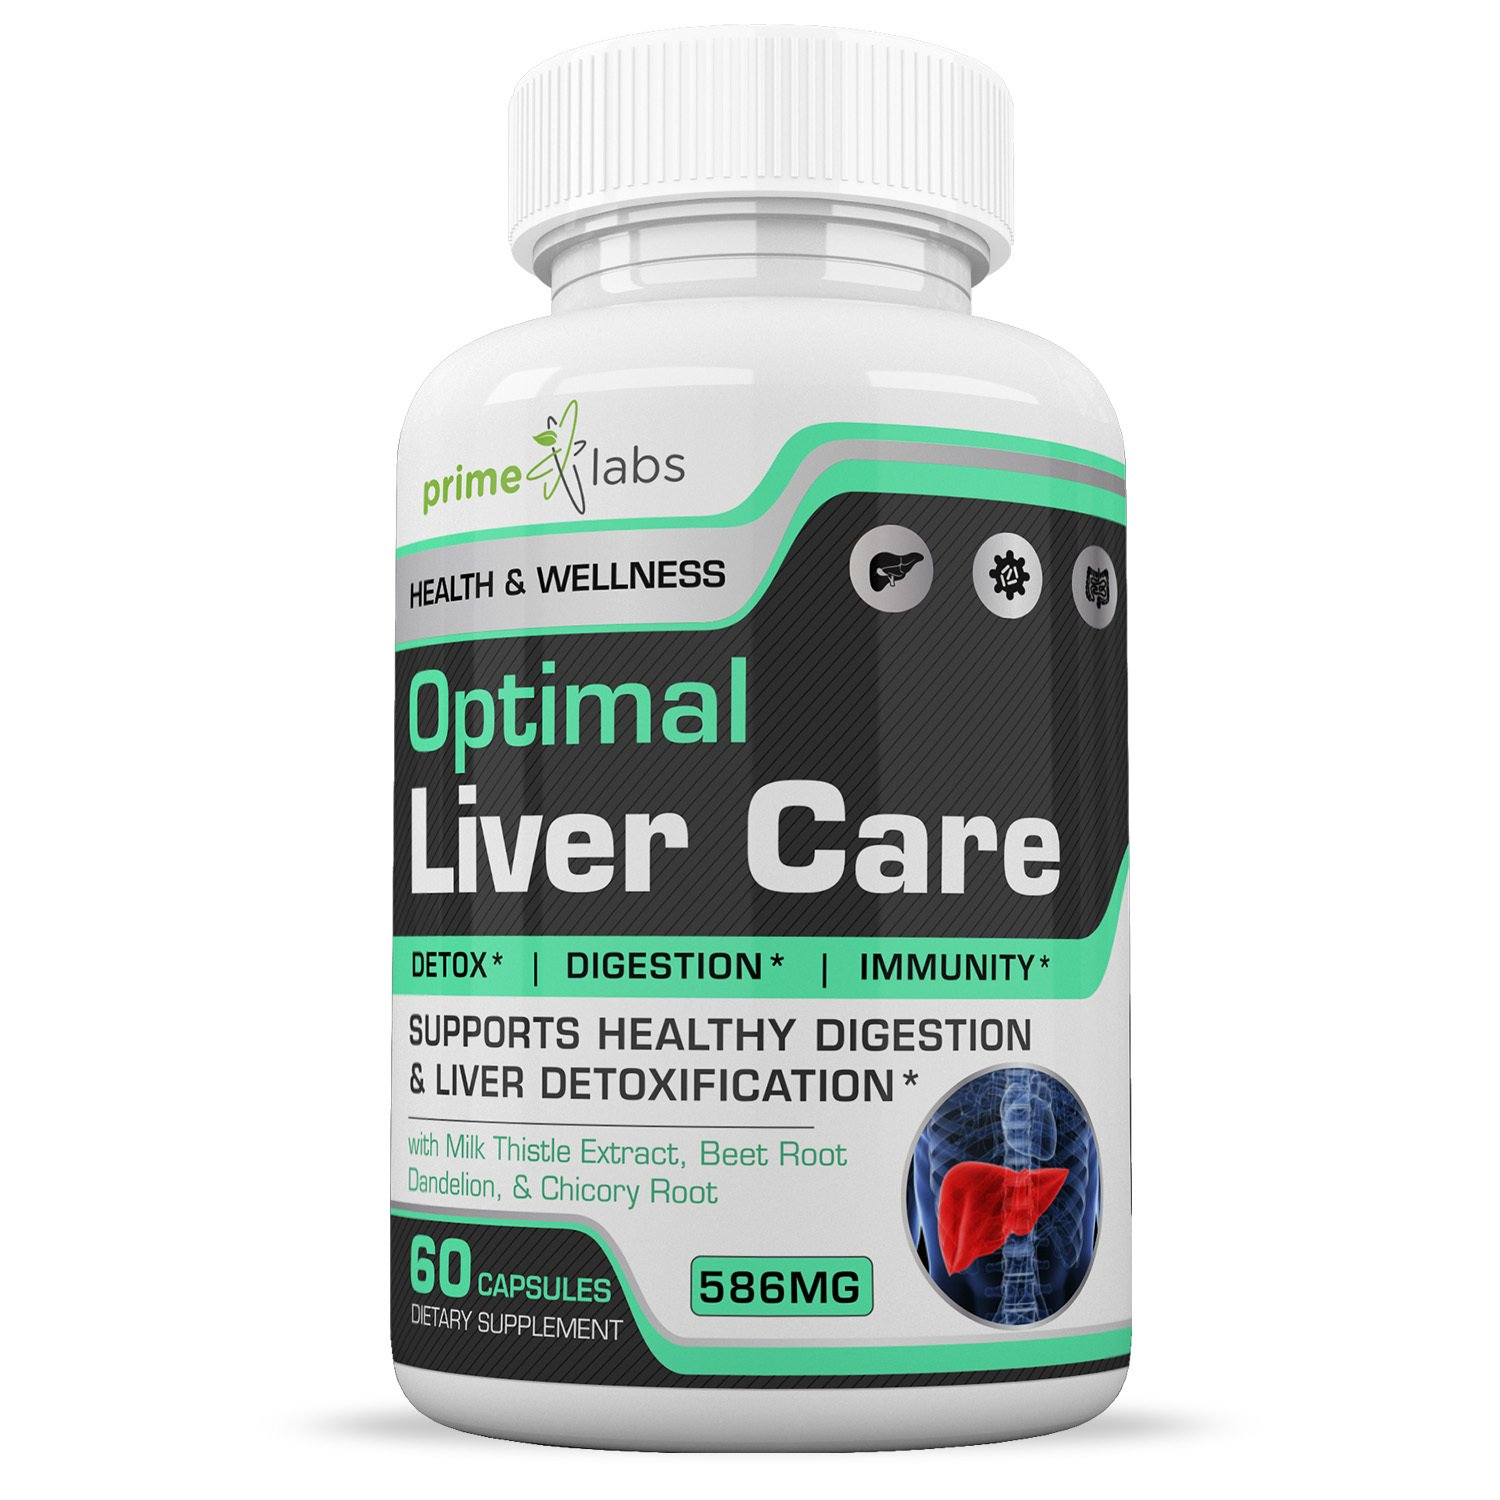 Optimal Liver Care Liver Cleanse Pills That Work – Natural Detox and Digestion Aid with Milk Thistle Extract, Beet Root, Dandelion, Chicory Root – Rid Your Body of Toxins and Feel Better – 60 Capsules